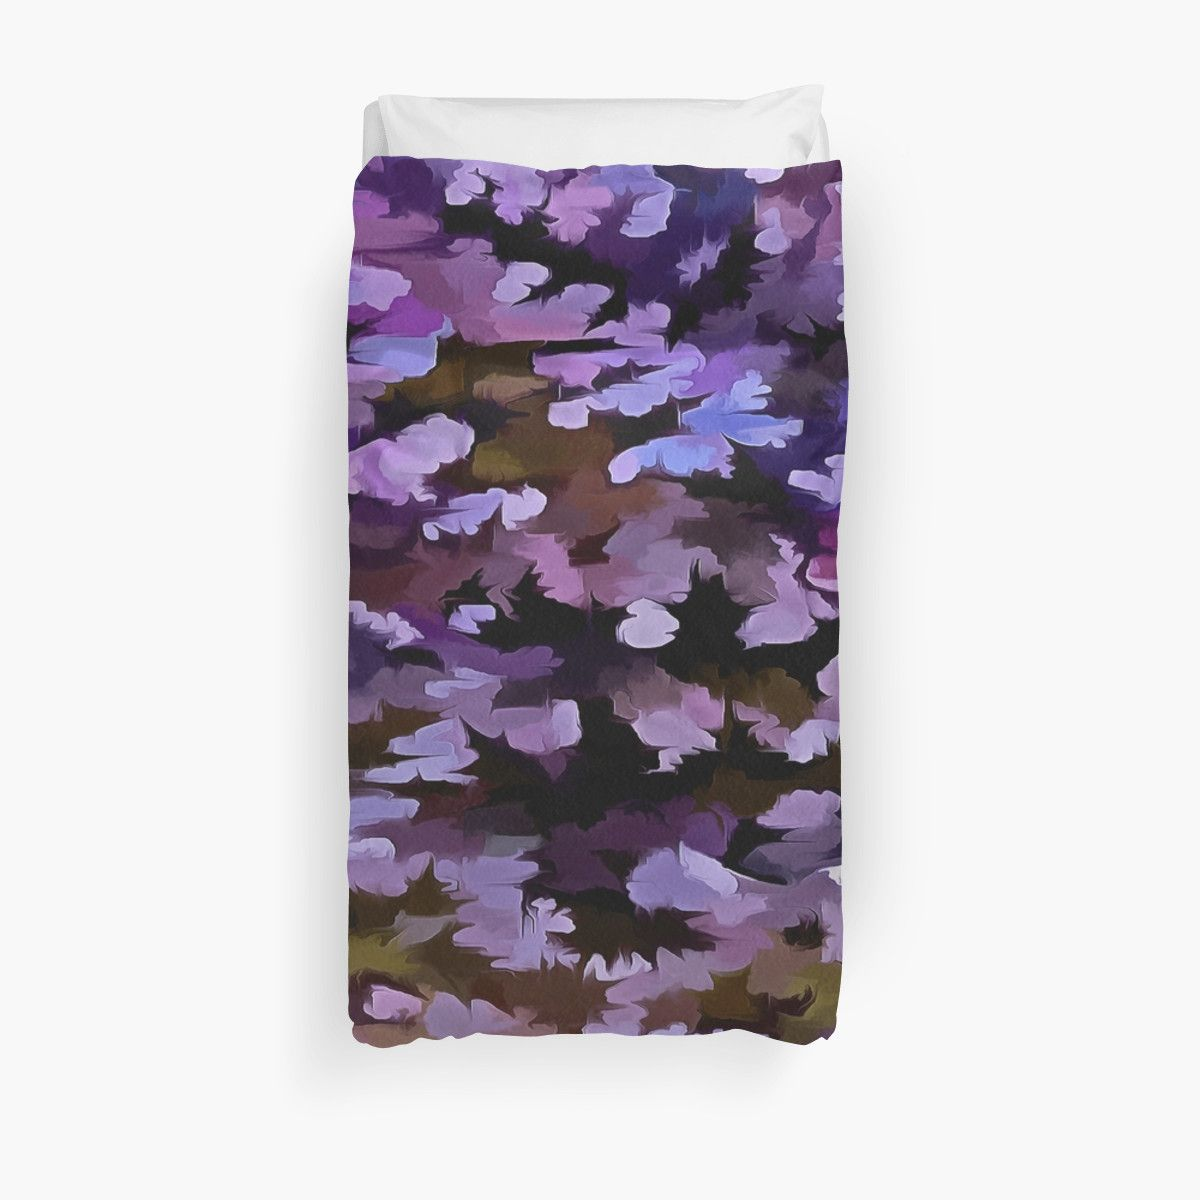 """#Foliage #Abstract In #Blue, #Pink and #Sienna"""" #Duvet #Covers by taiche 